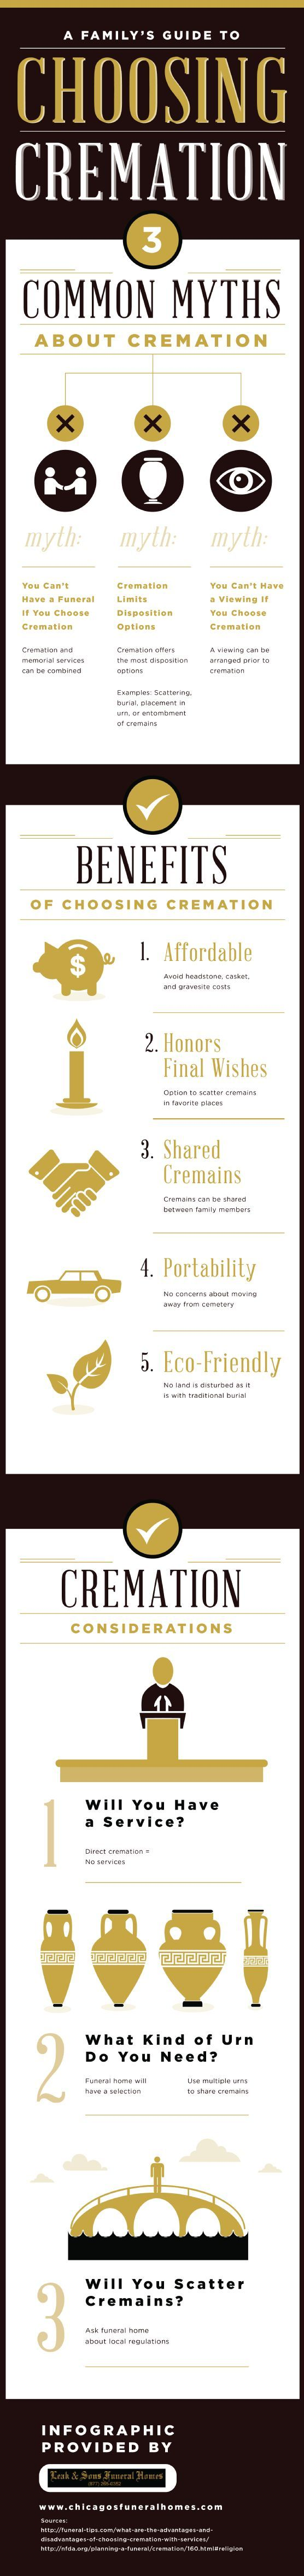 Cremation is an eco-friendly option that provides an alternative to traditional burials. Unlike traditional burials, cremation results in no disturbed land. Discover some of the other advantages of cremation by checking out this infographic from a Chicago funeral home.